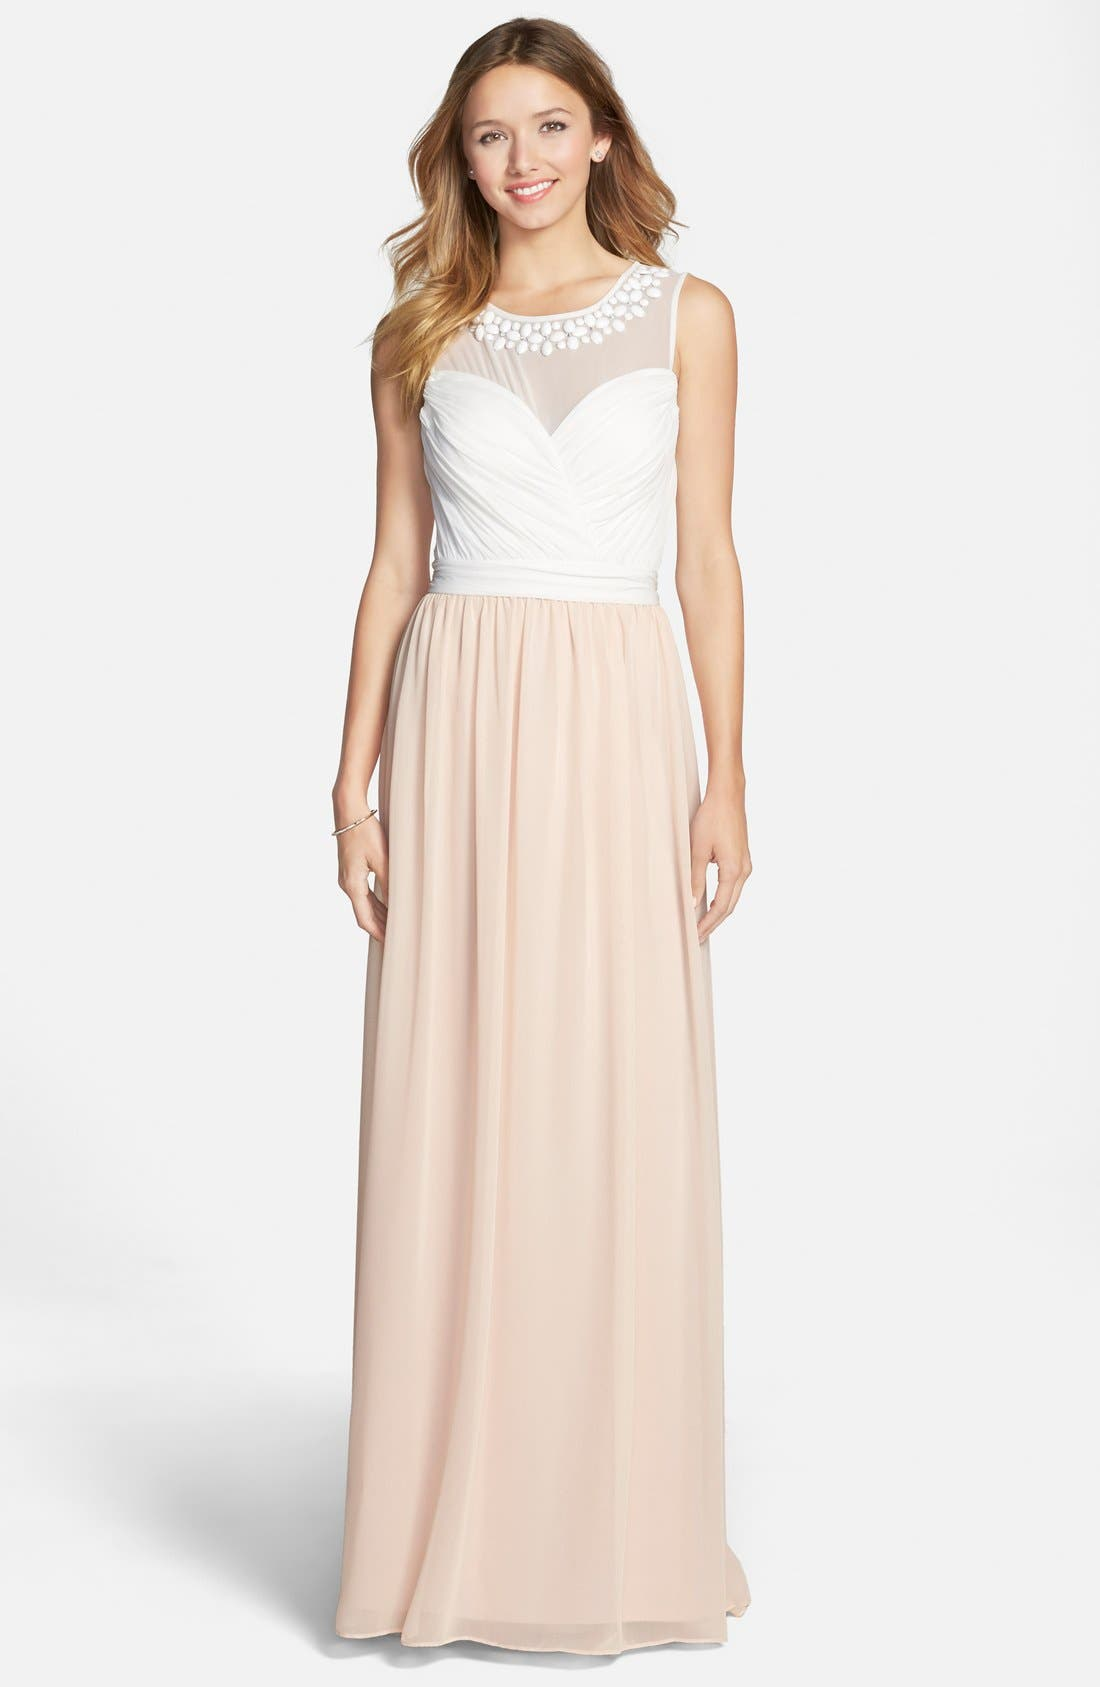 Main Image - Hailey by Adrianna Papell Embellished Two-Tone Chiffon Gown